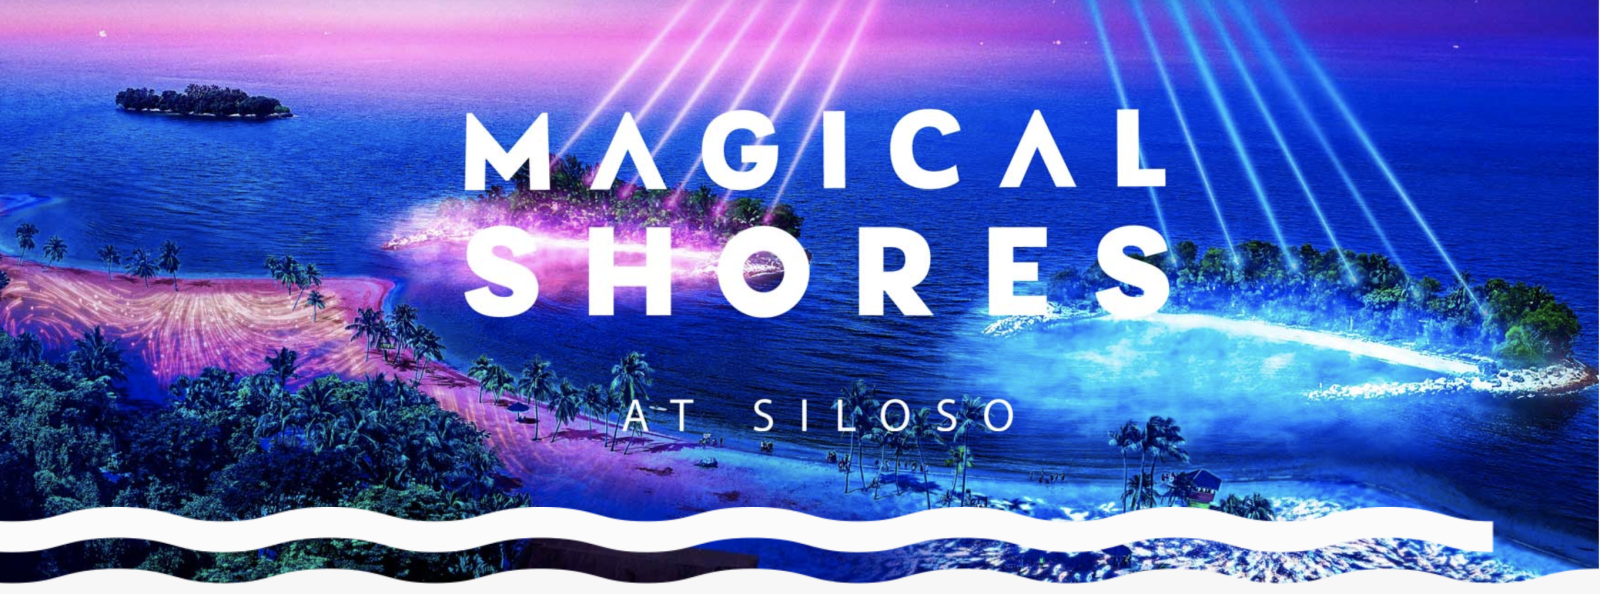 Magical Shores at Sentosa